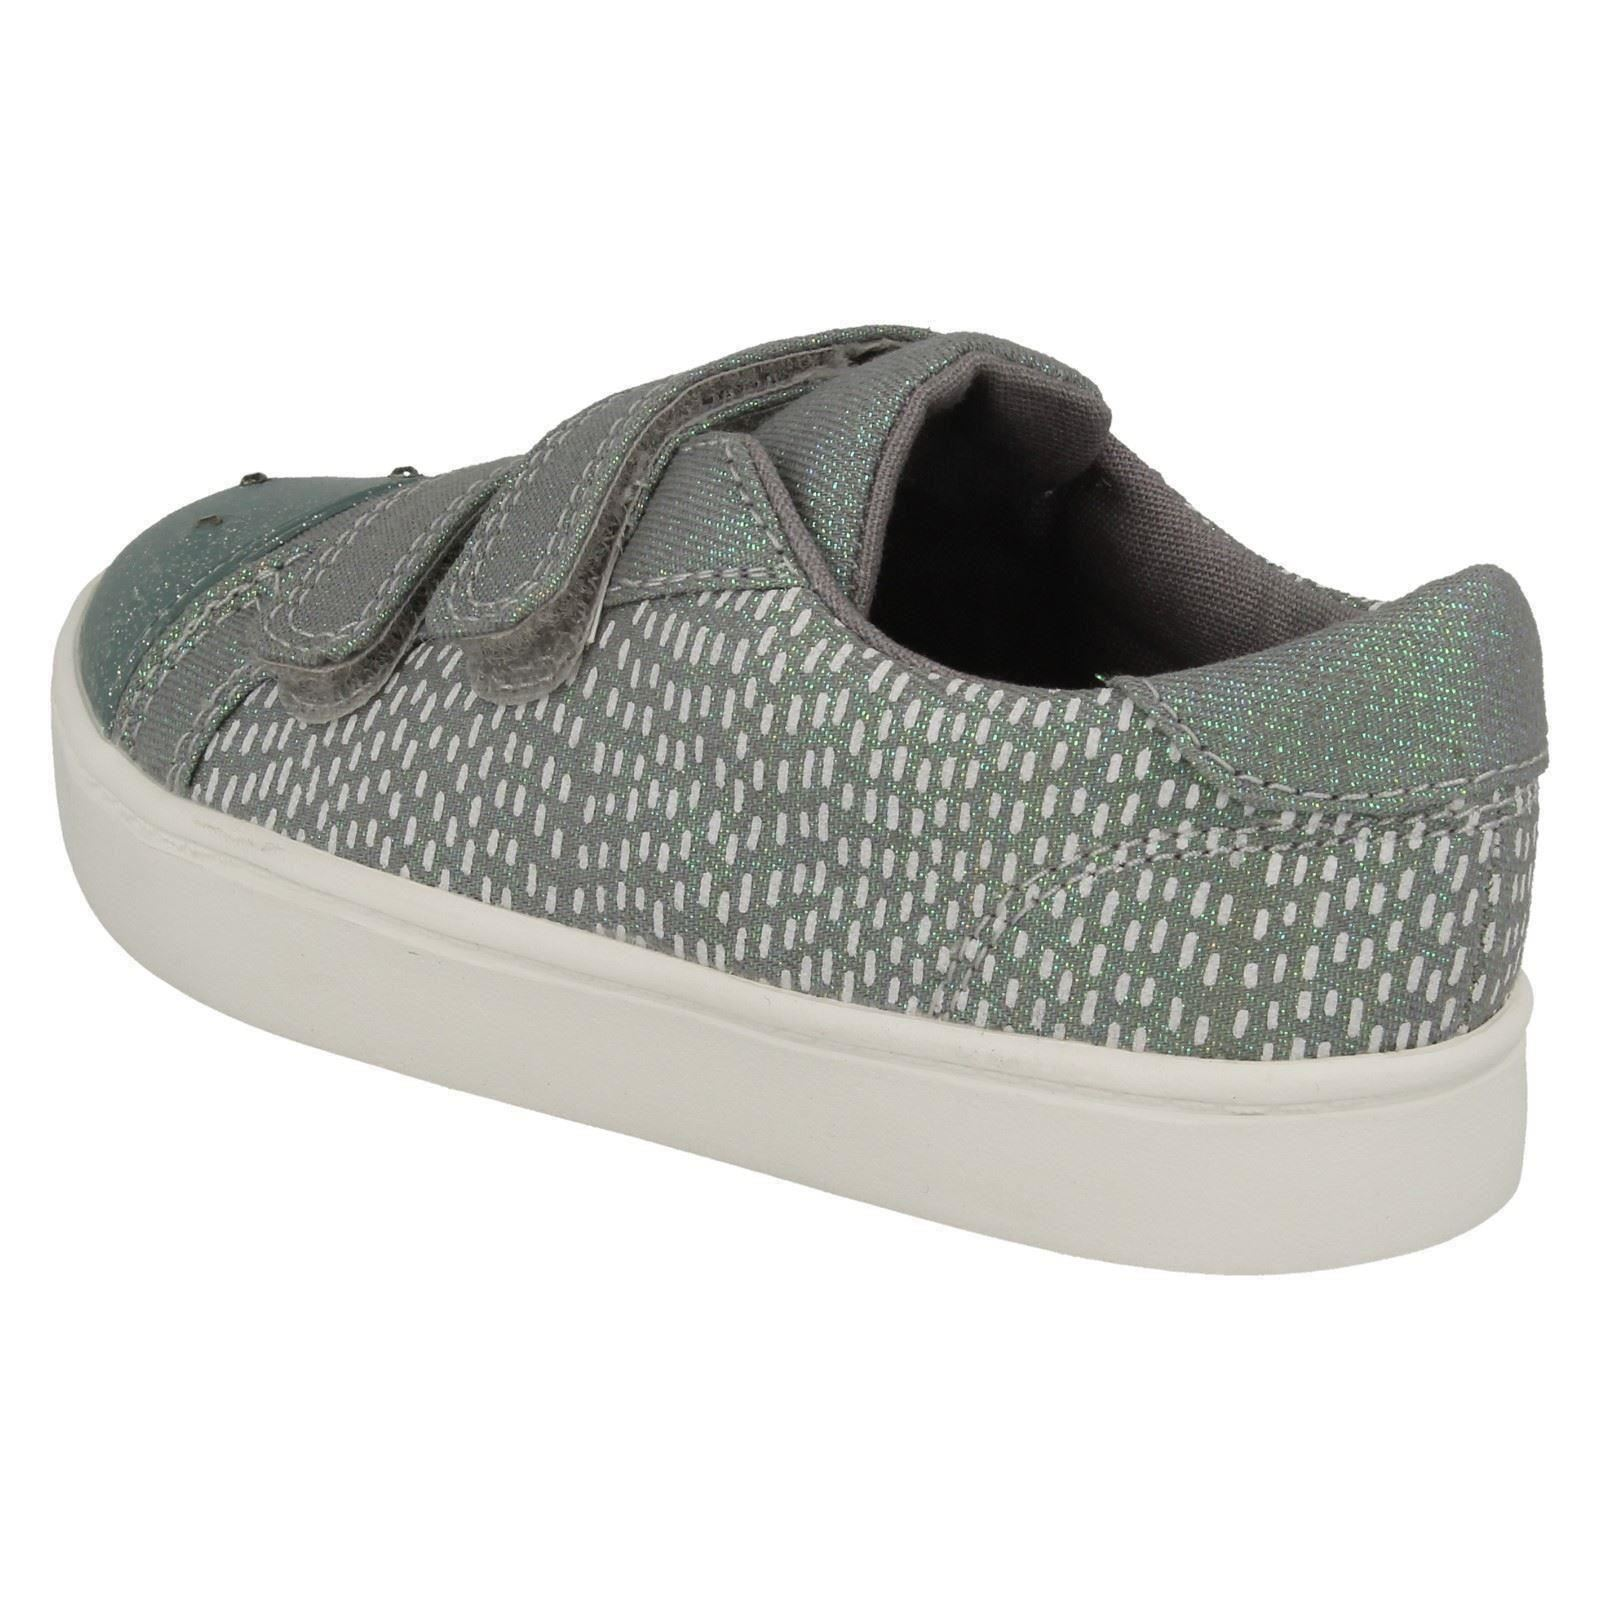 Pattie Lola Girls Clarks Casual Canvas Shoes